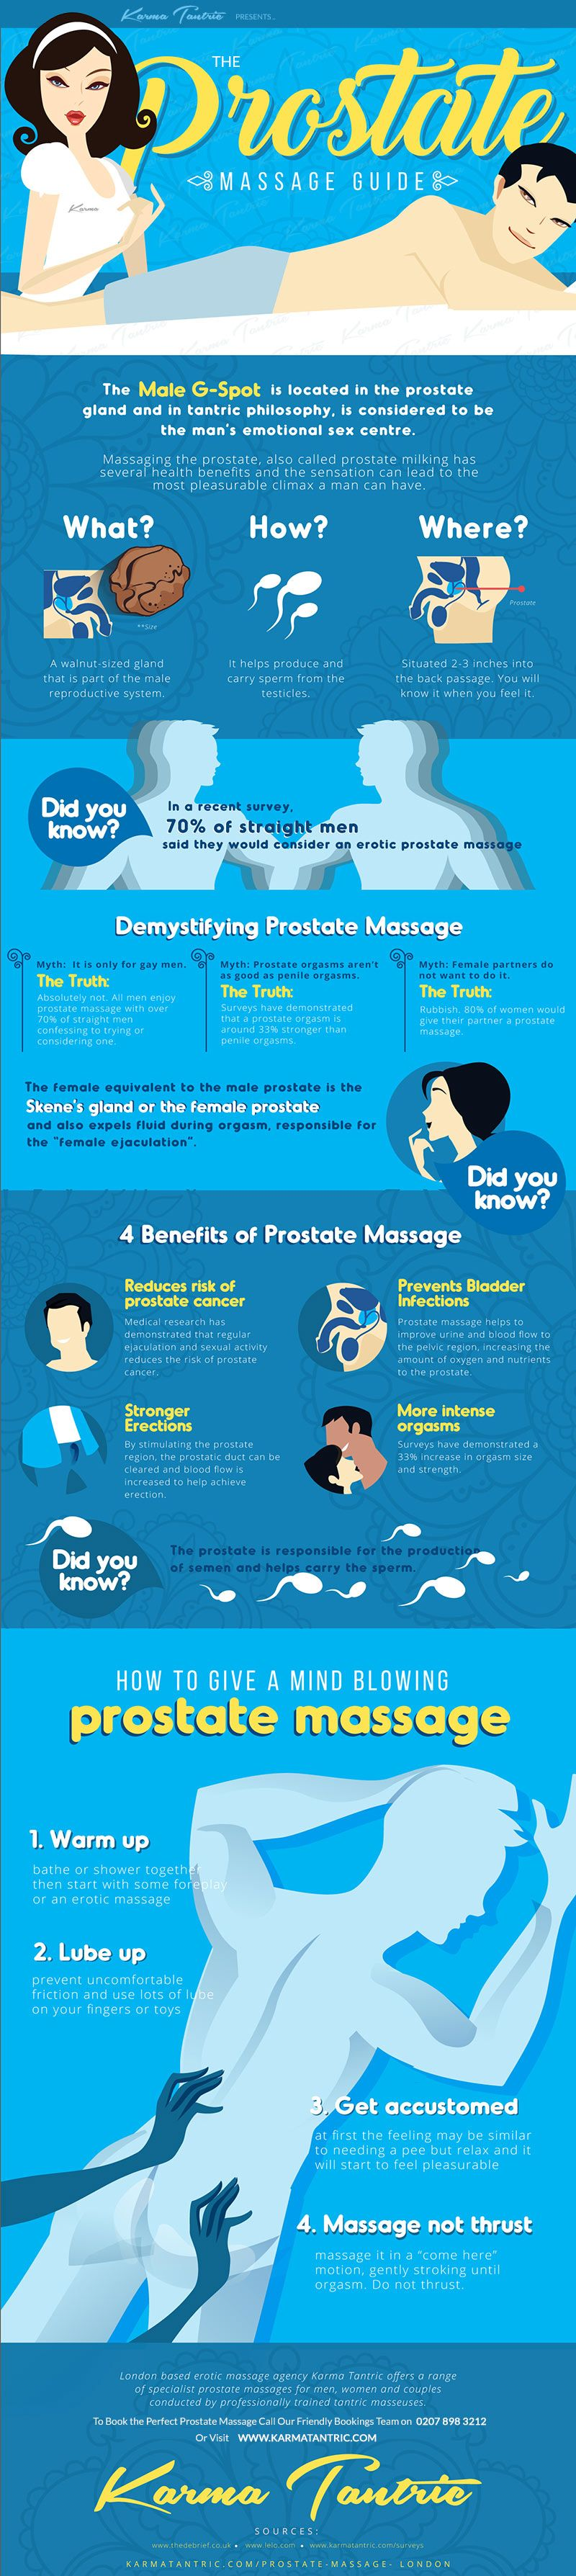 The Ultimate Prostate Massage Guide #Infographic